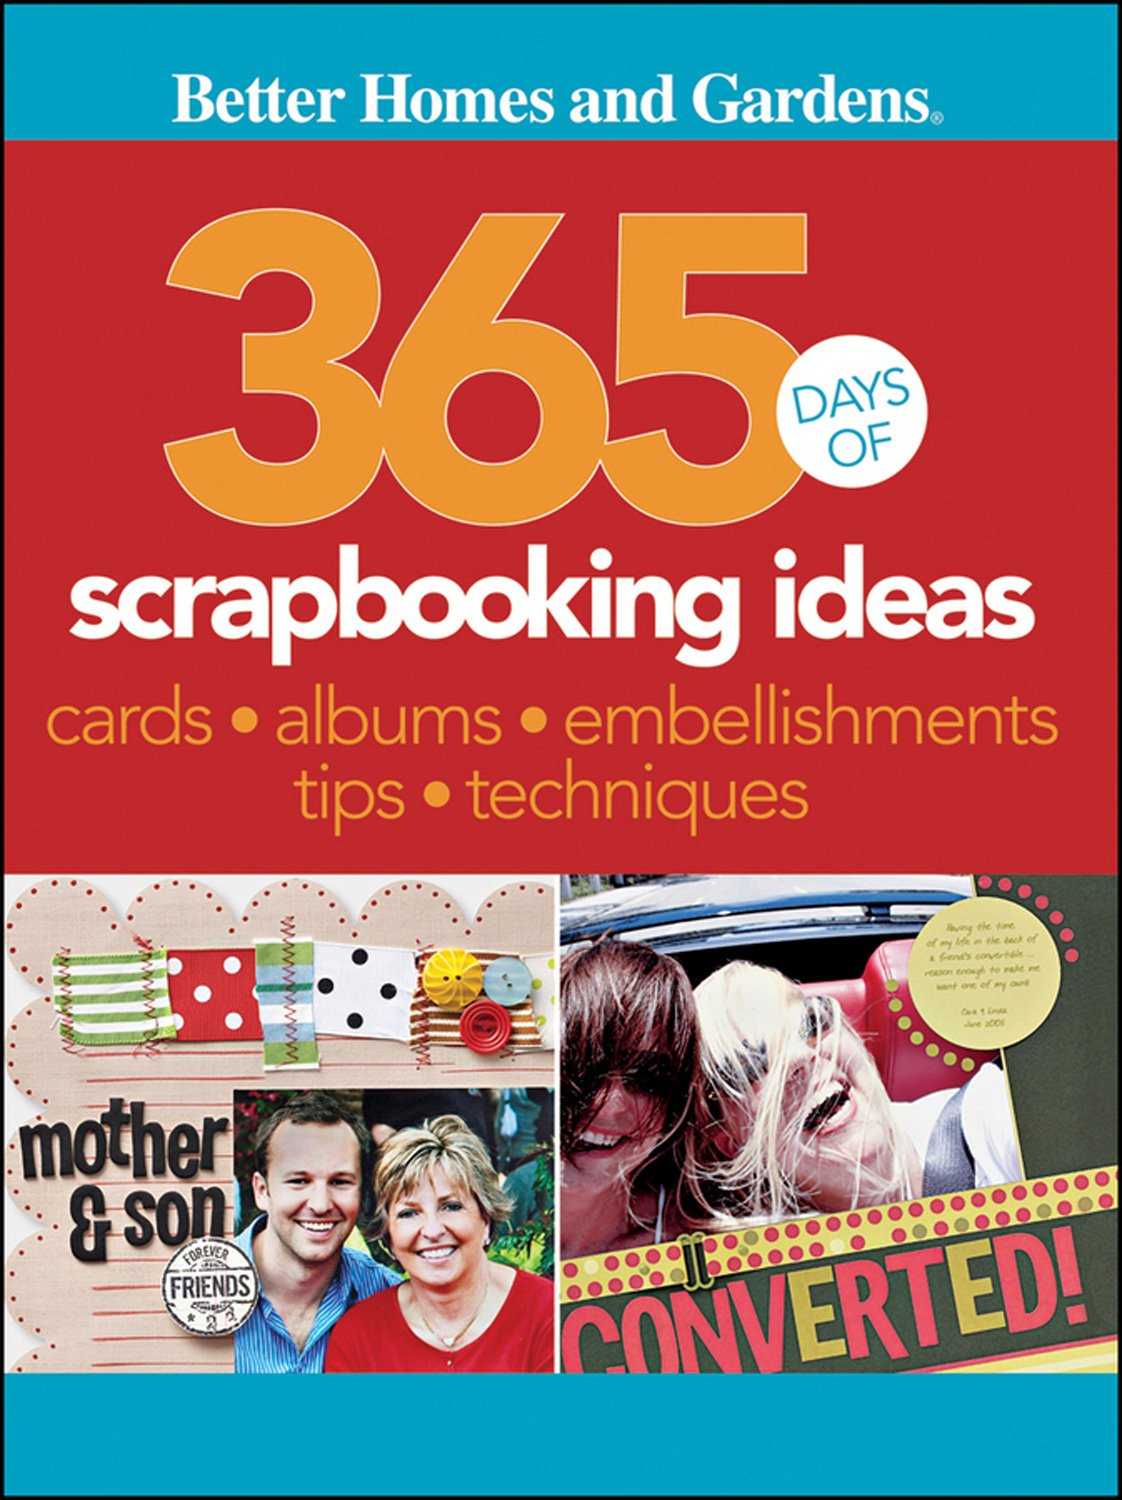 365 Days of Scrapbooking Ideas (Better Homes and Gardens Cooking)